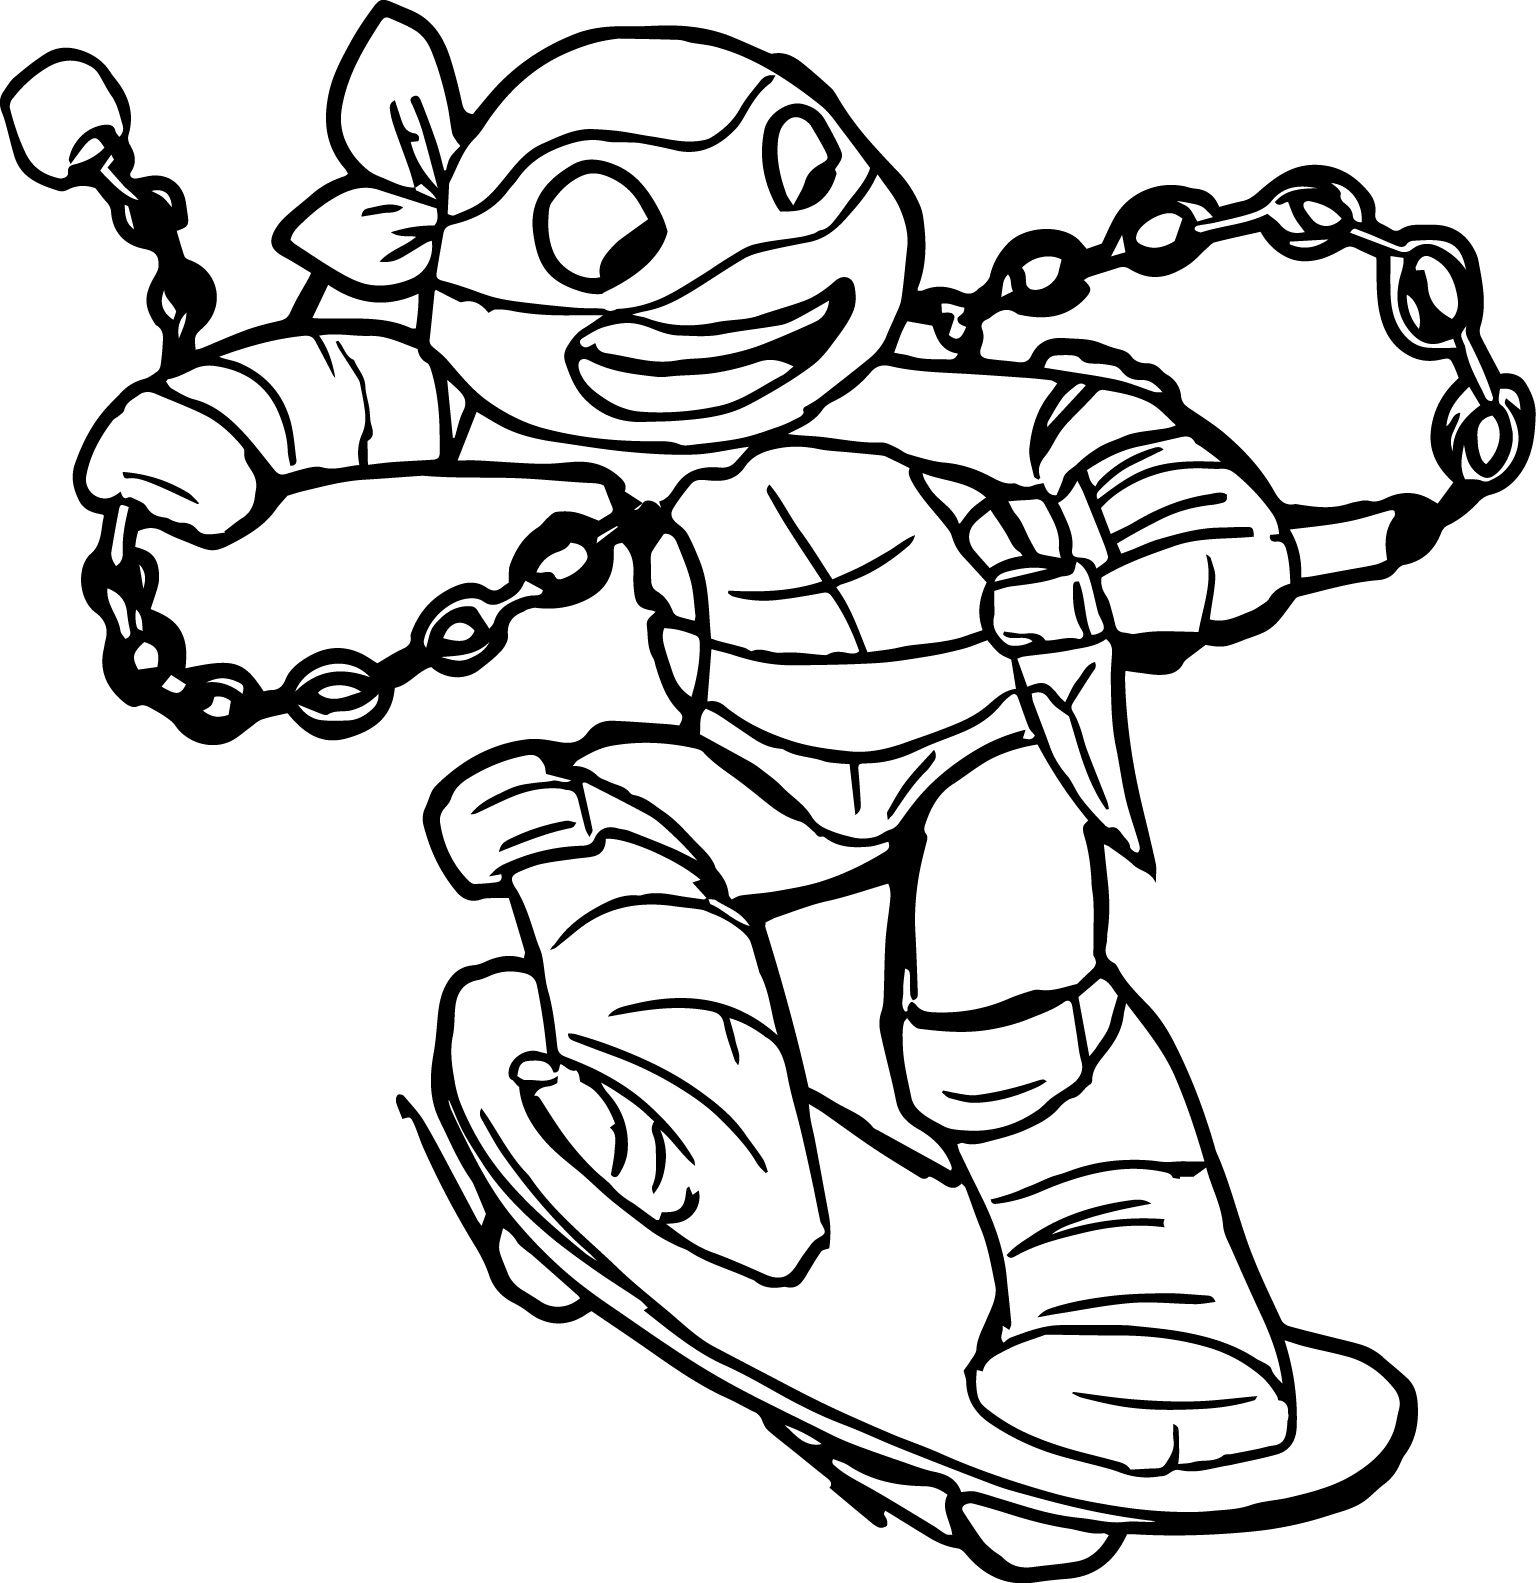 Coloring online ninja - Ninja Turtle Going On Skater Coloring Page Jpg